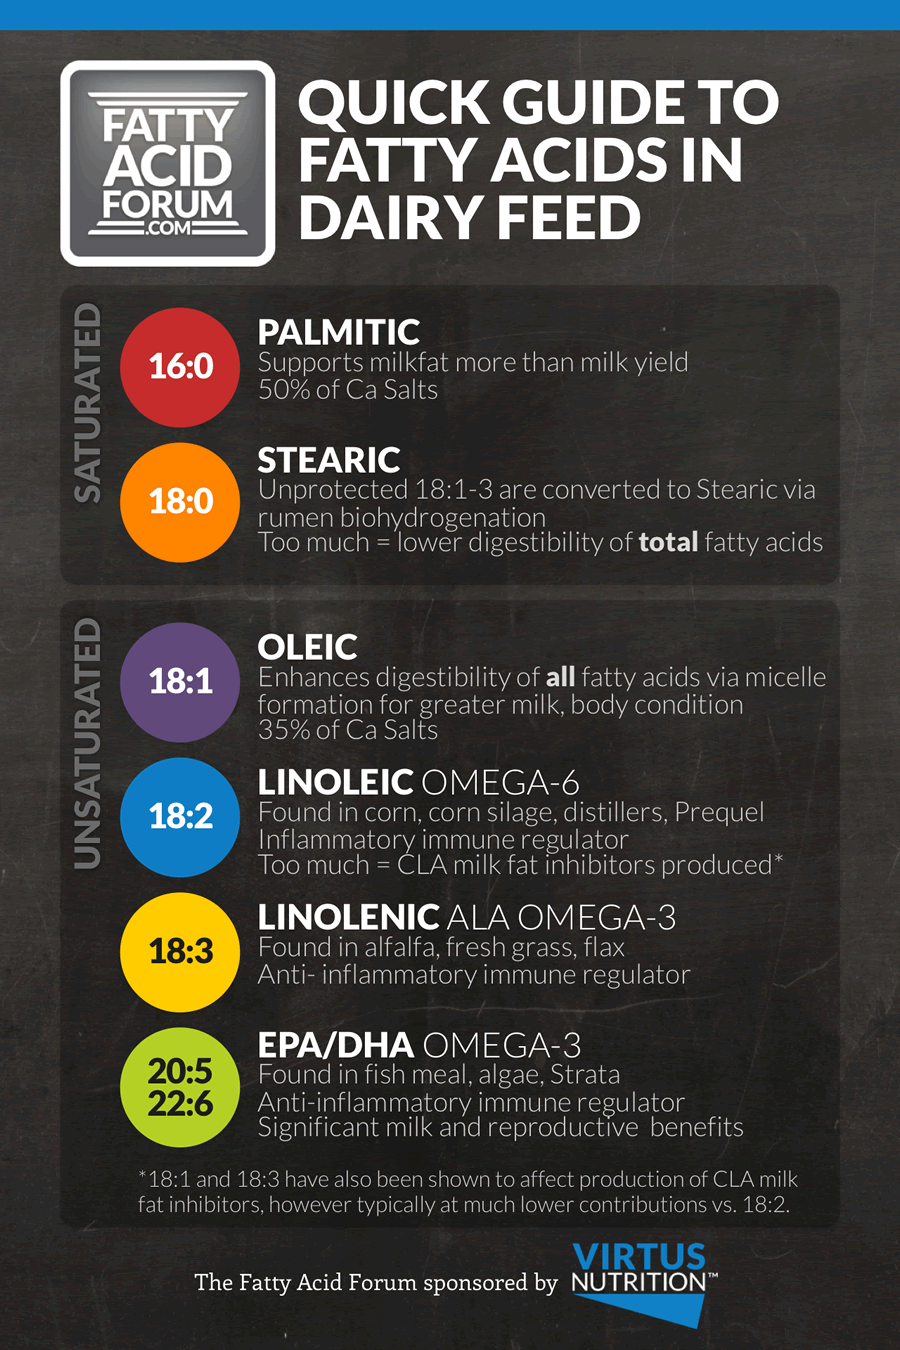 Quick Guide To Fatty Acids In Dairy Feed